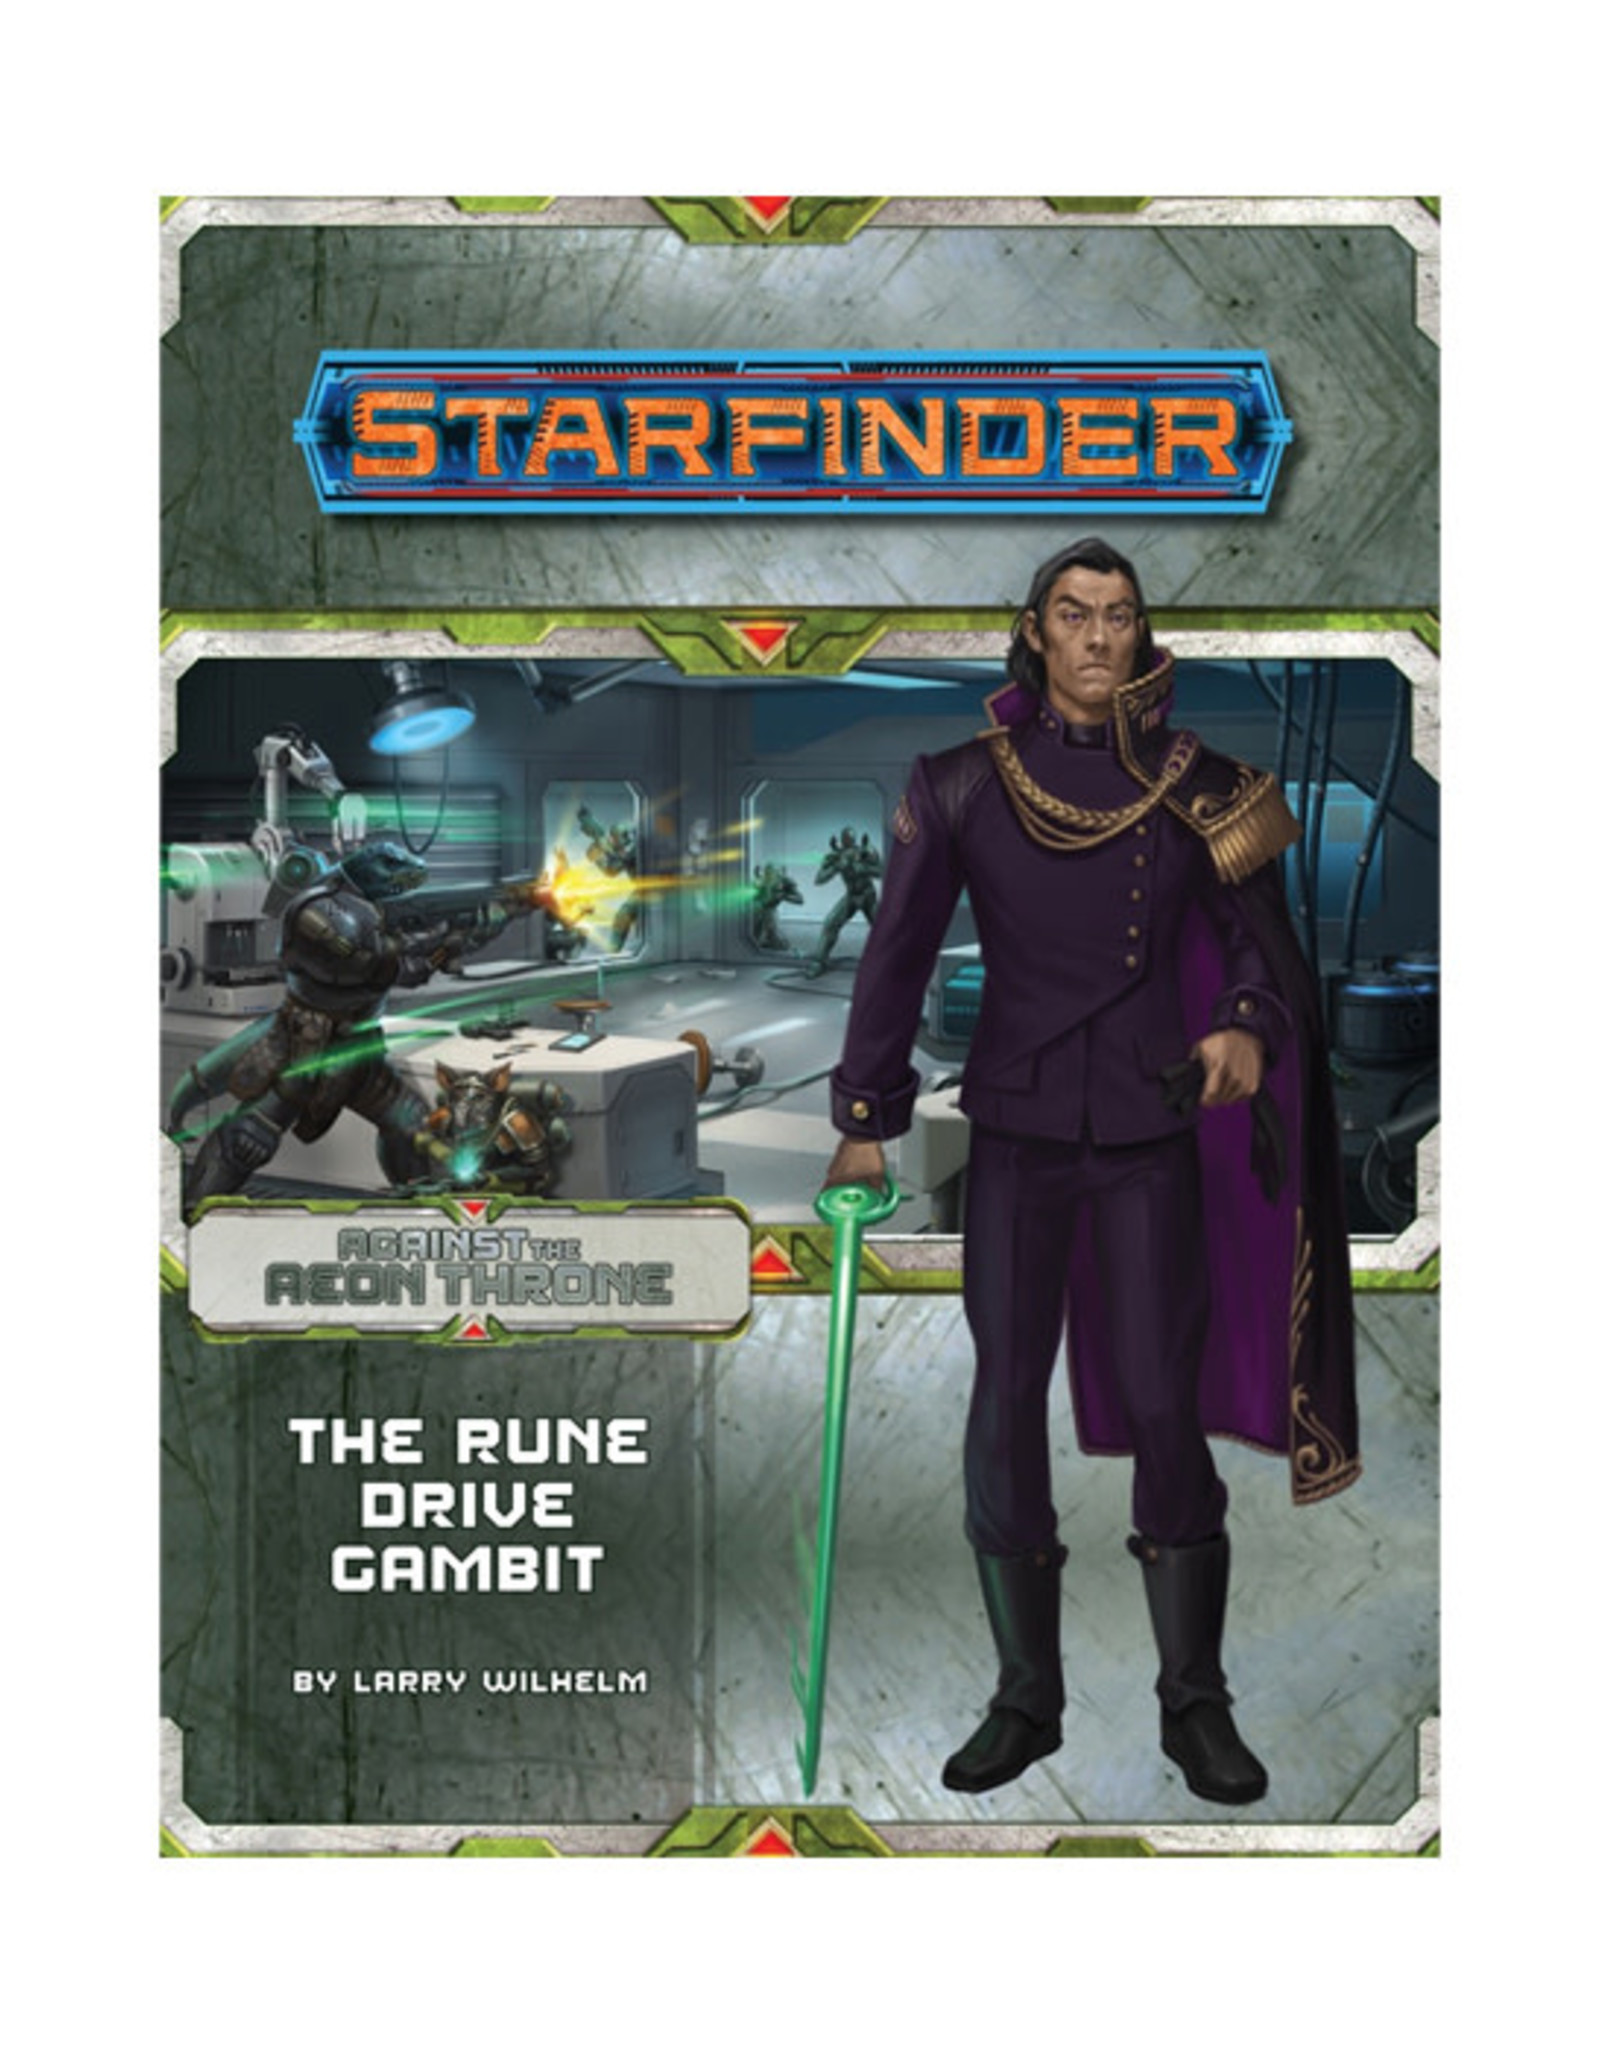 Starfinder Starfinder: Adventure Path - Against the Aeon Throne - The Rune Drive Gambit